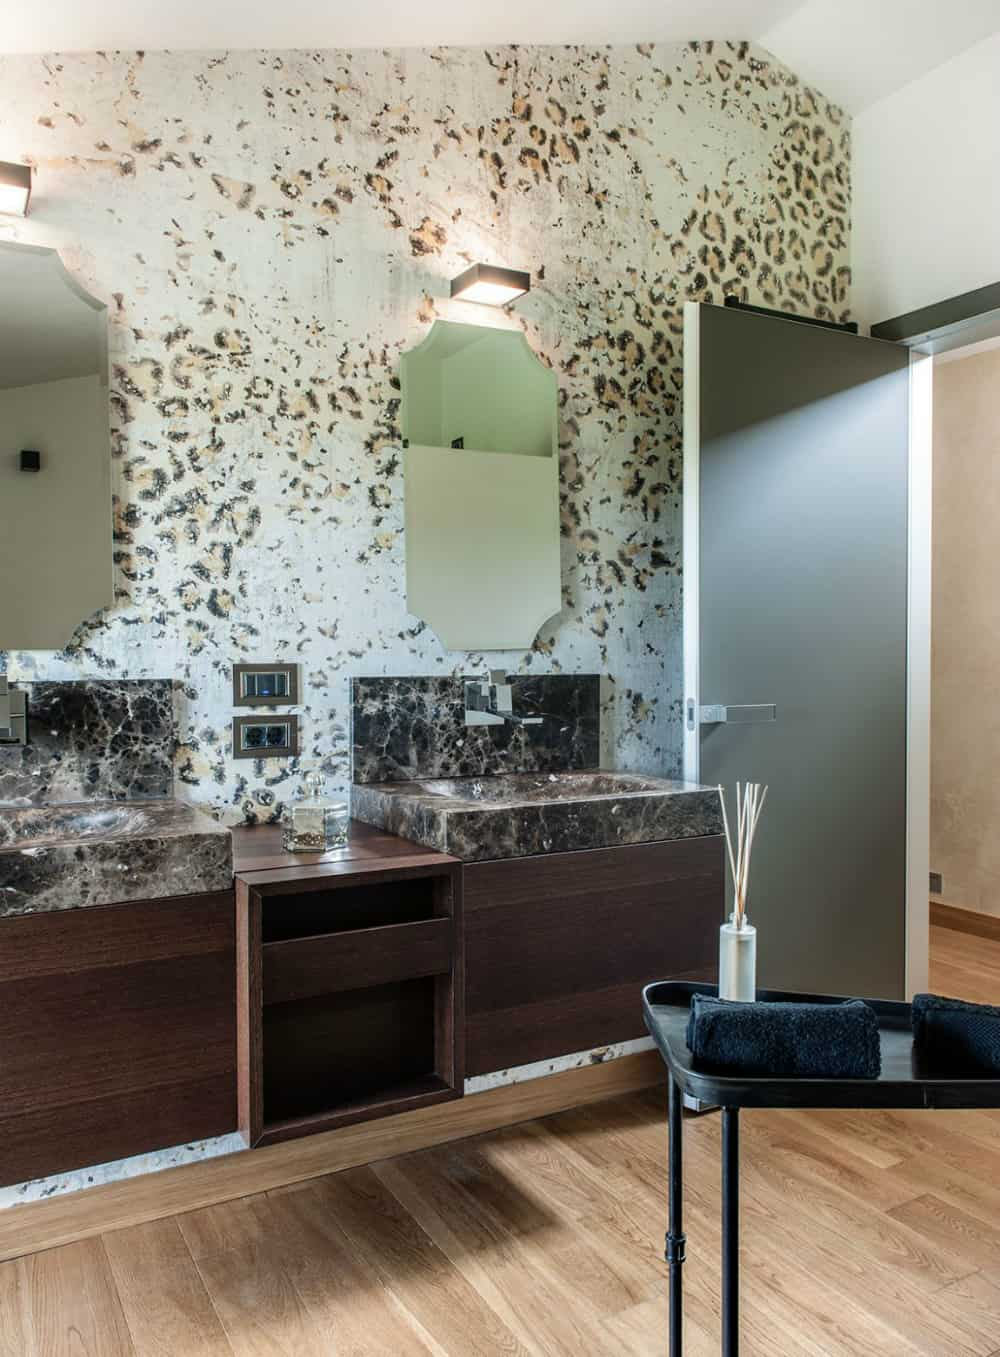 Marble sinks play along the cheetah-patterned walls